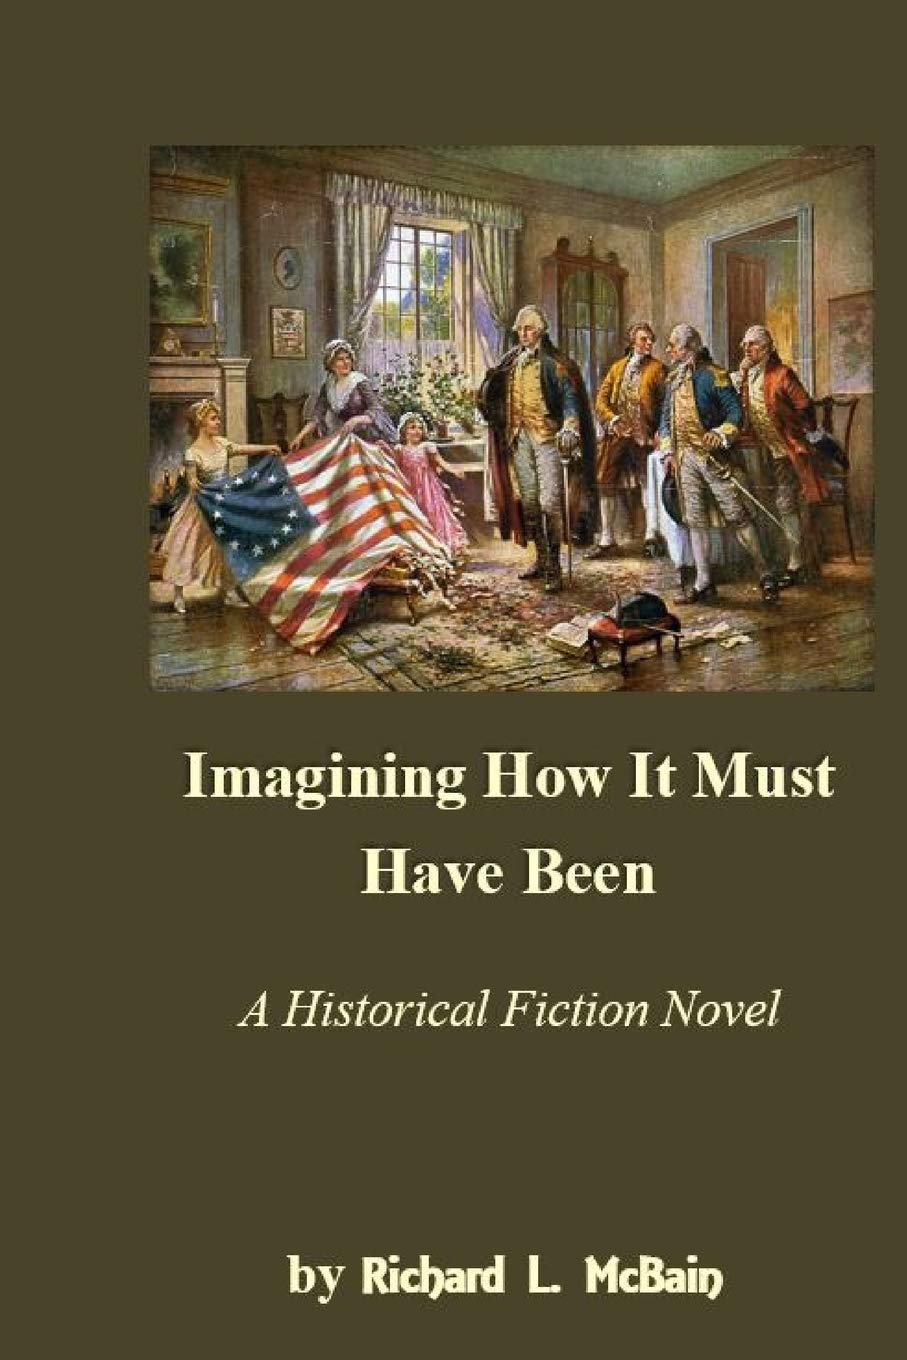 Imagining How It Must Have Been: Historical Fiction Novel